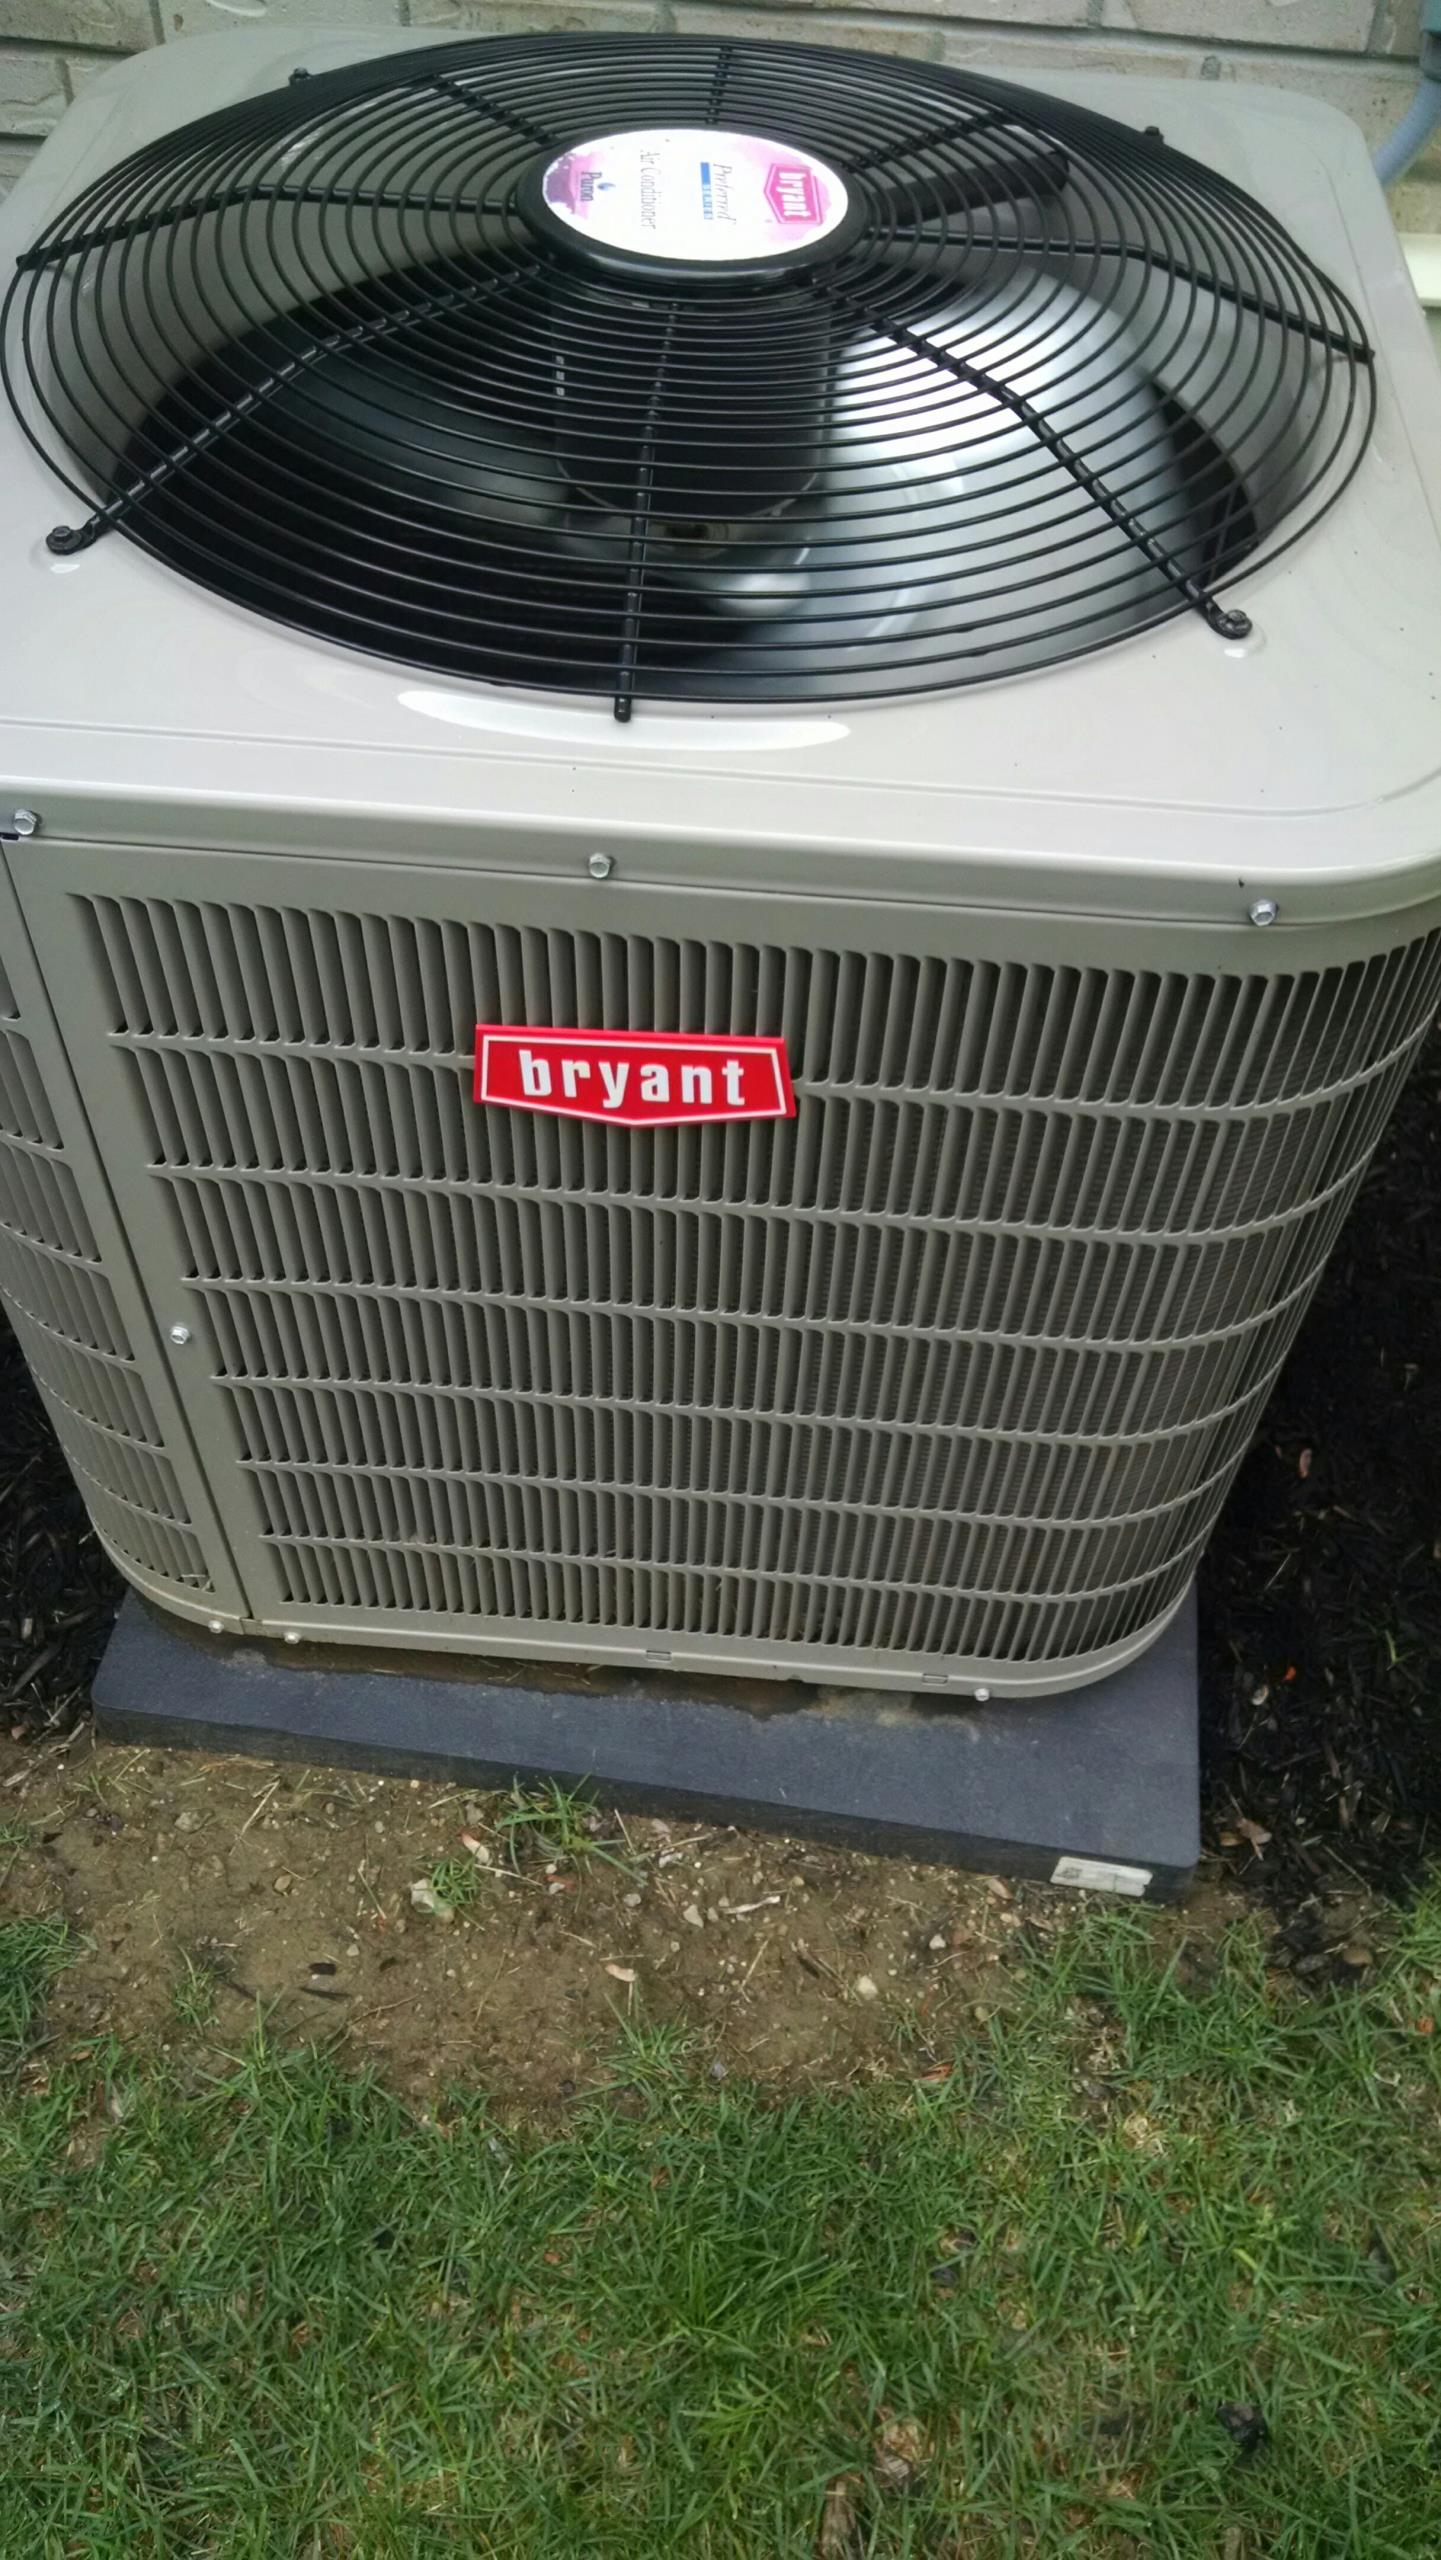 McCordsville, IN - Bryant air conditioning/AC maintenance. Service and repair. Install